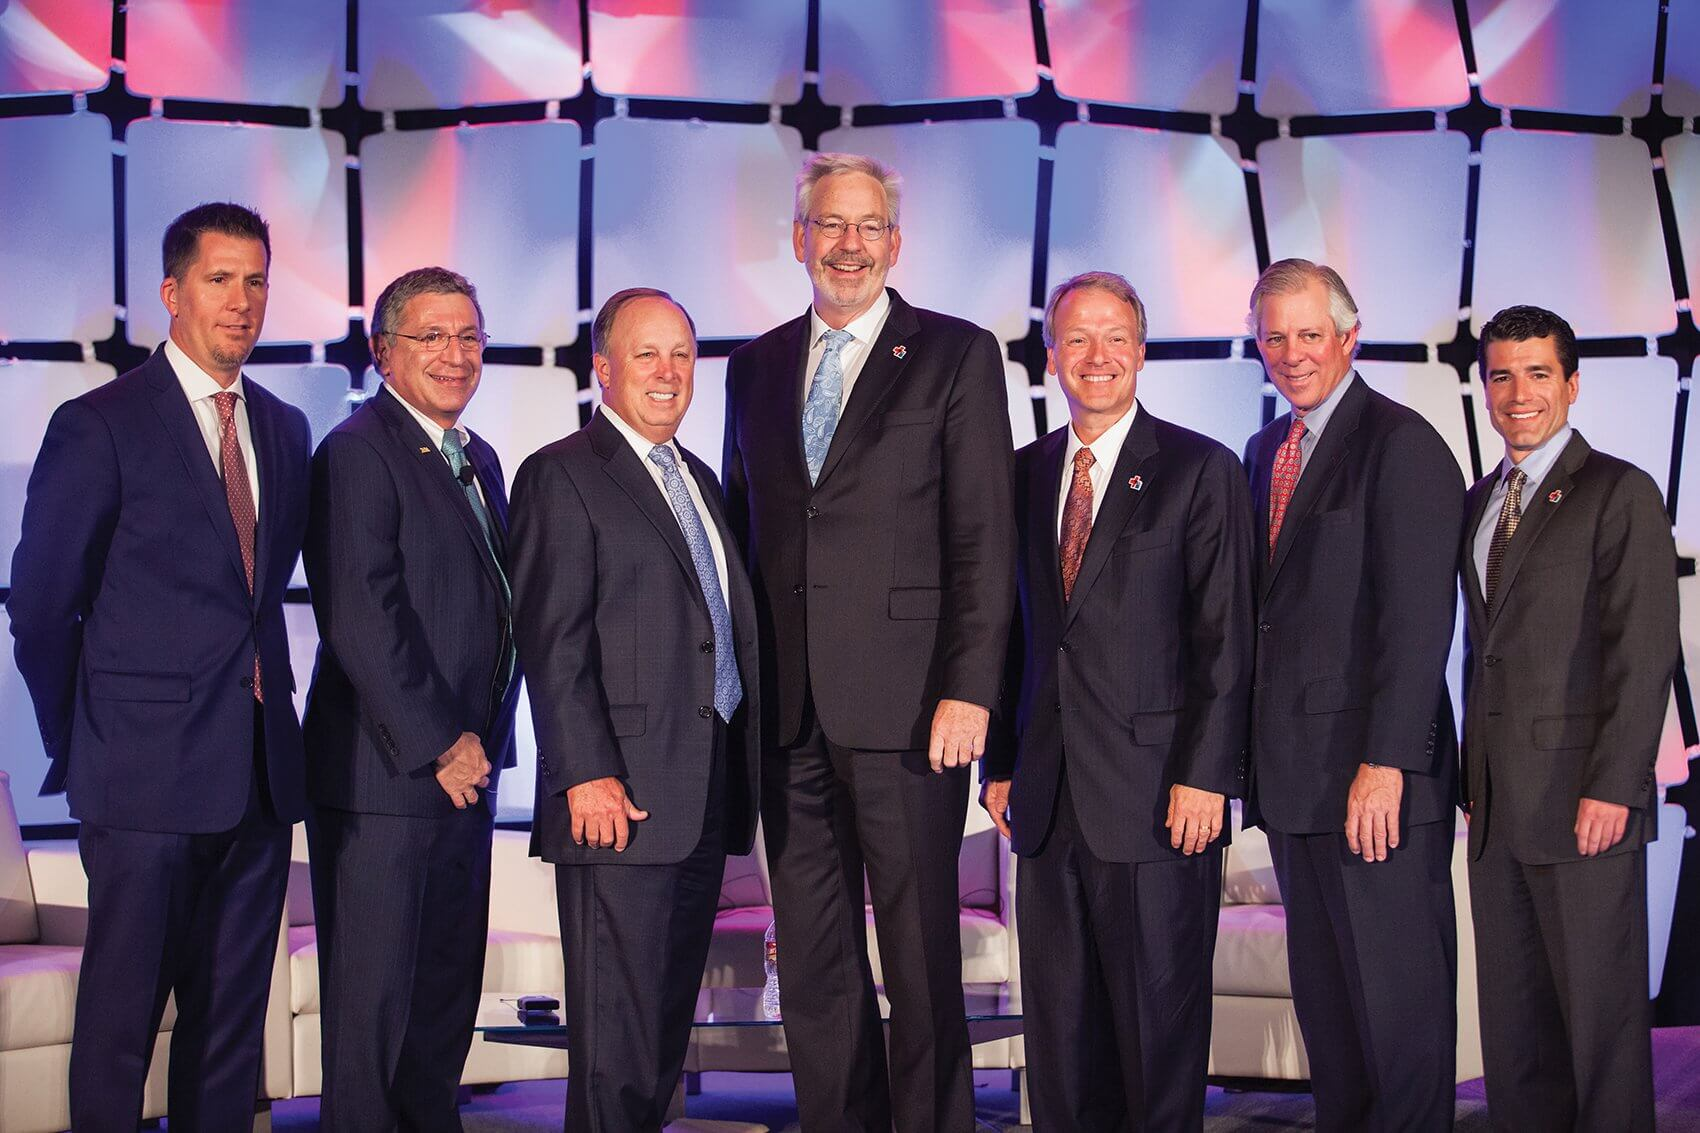 Leaders from Texas Medical Center and beyond addressed health care issues and solutions at Medical World Americas.